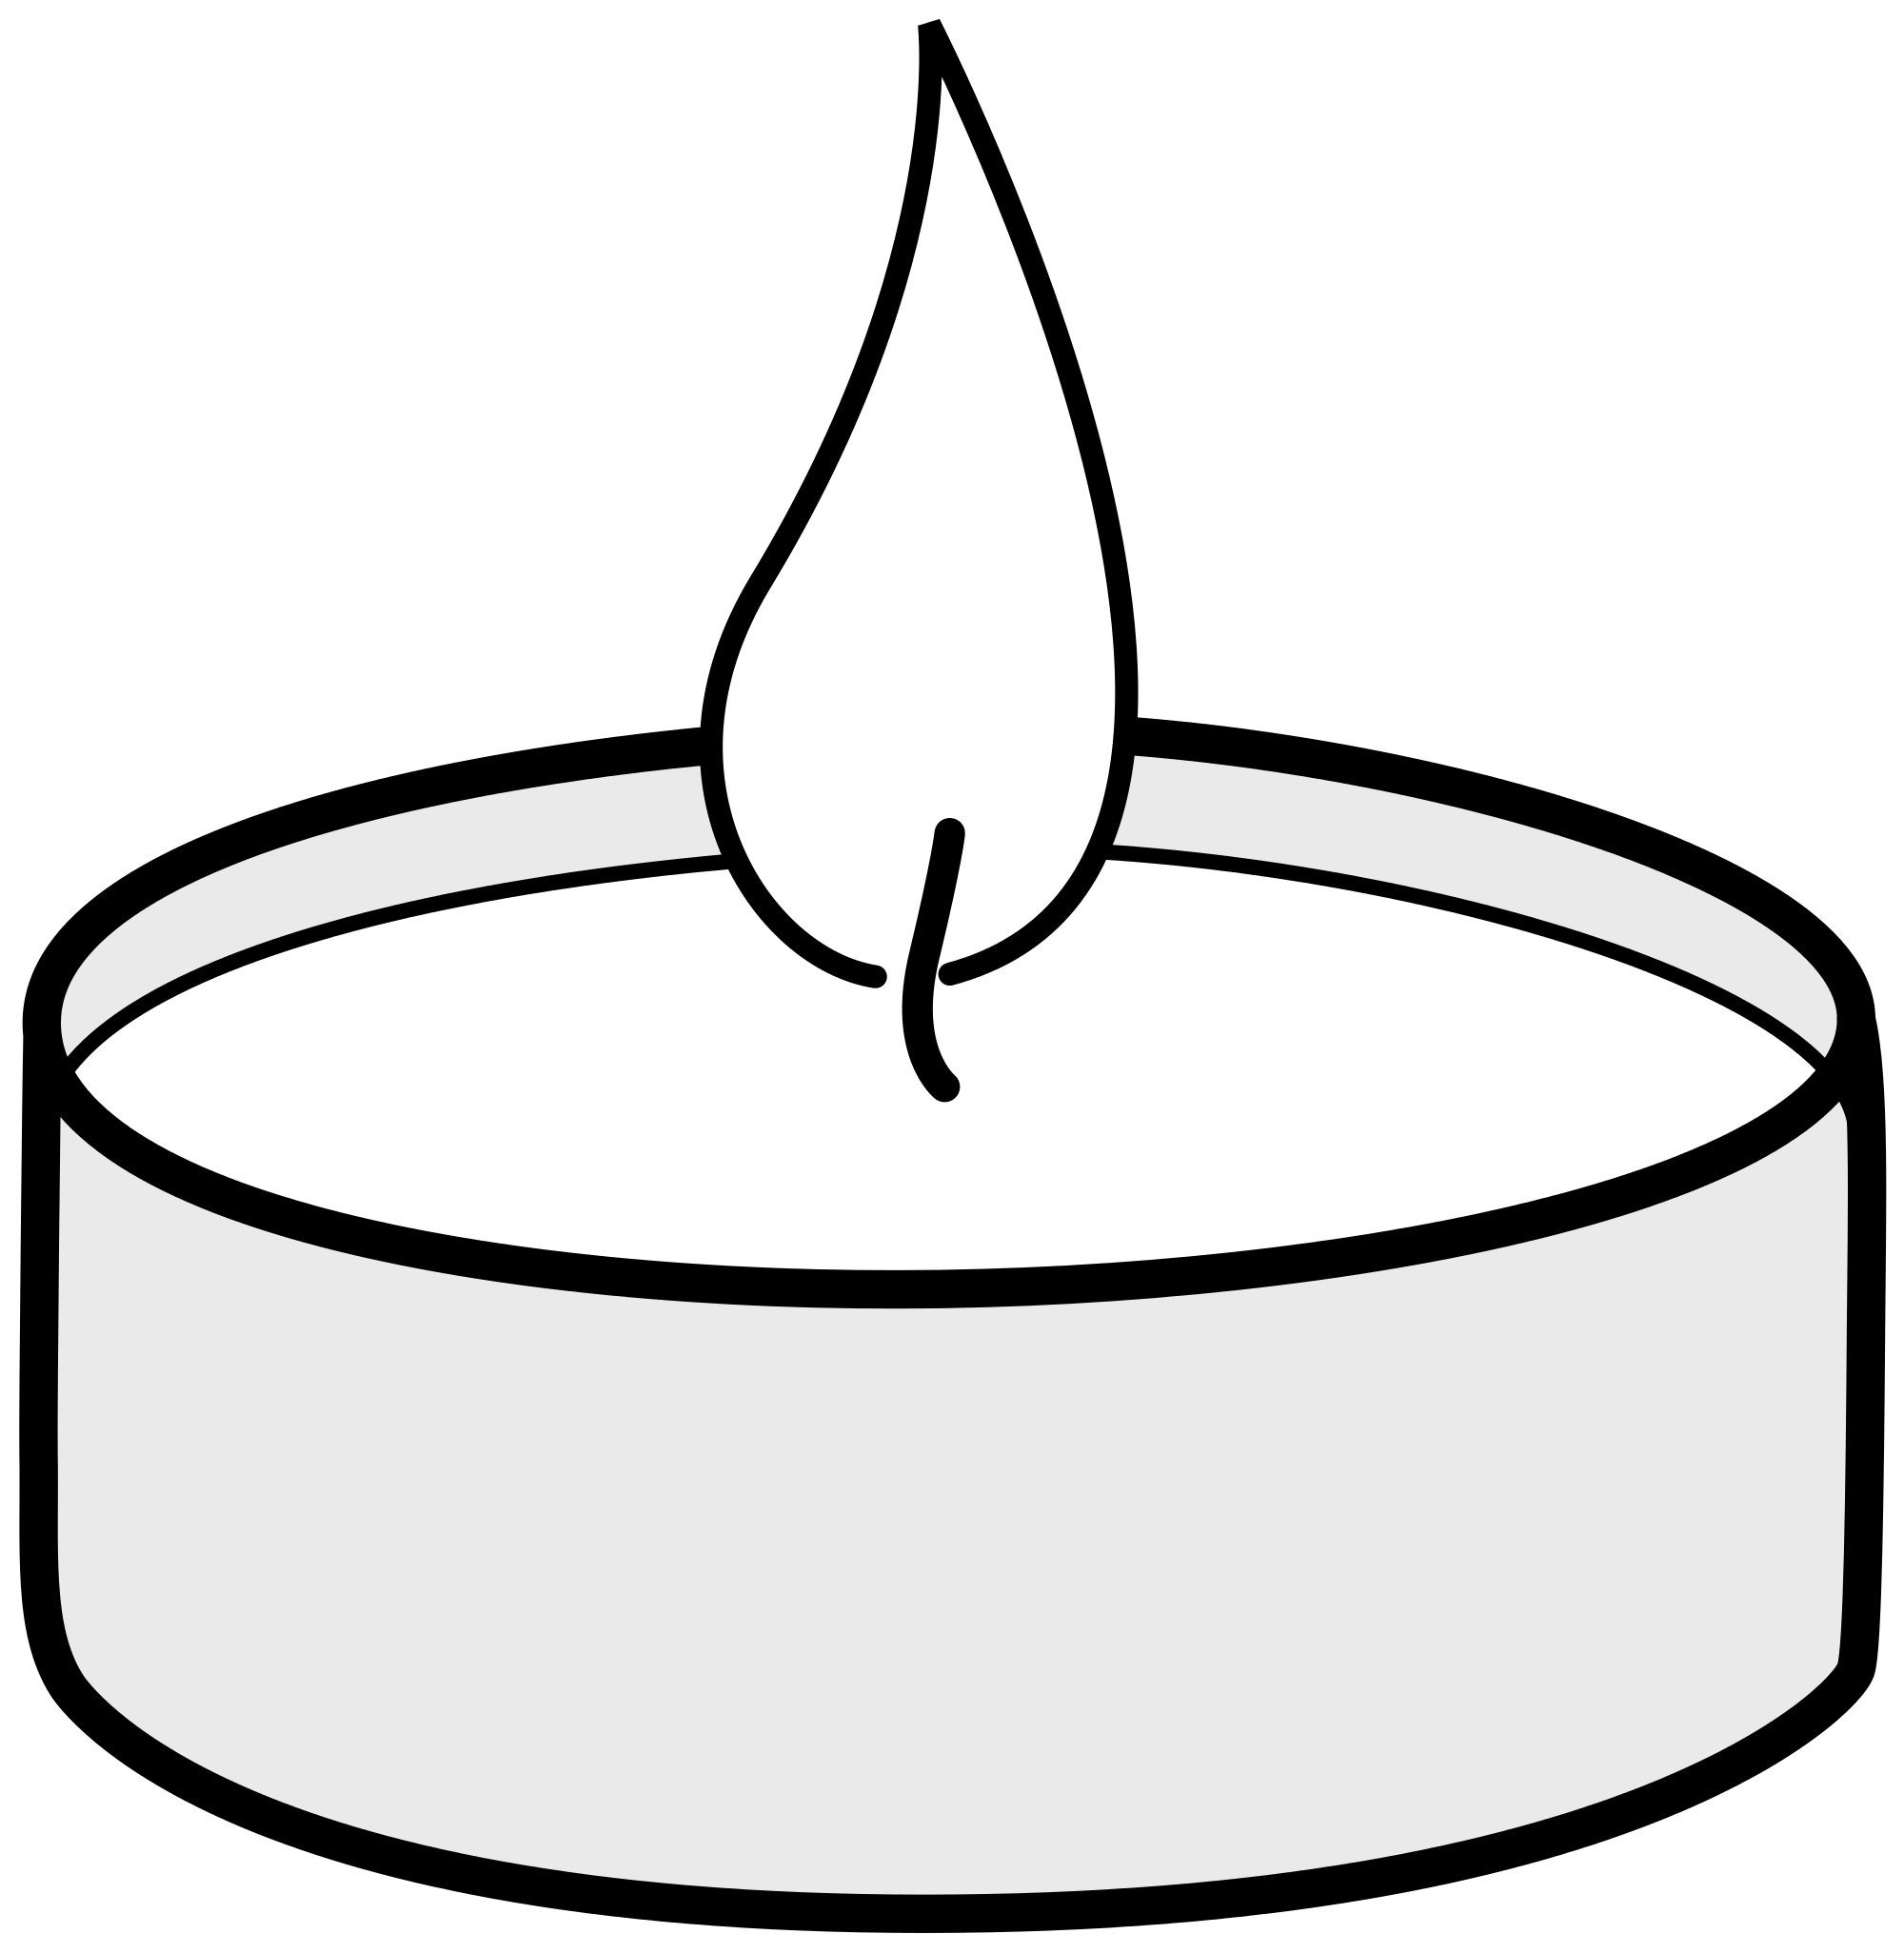 Drawing candles candle light. Collection of png